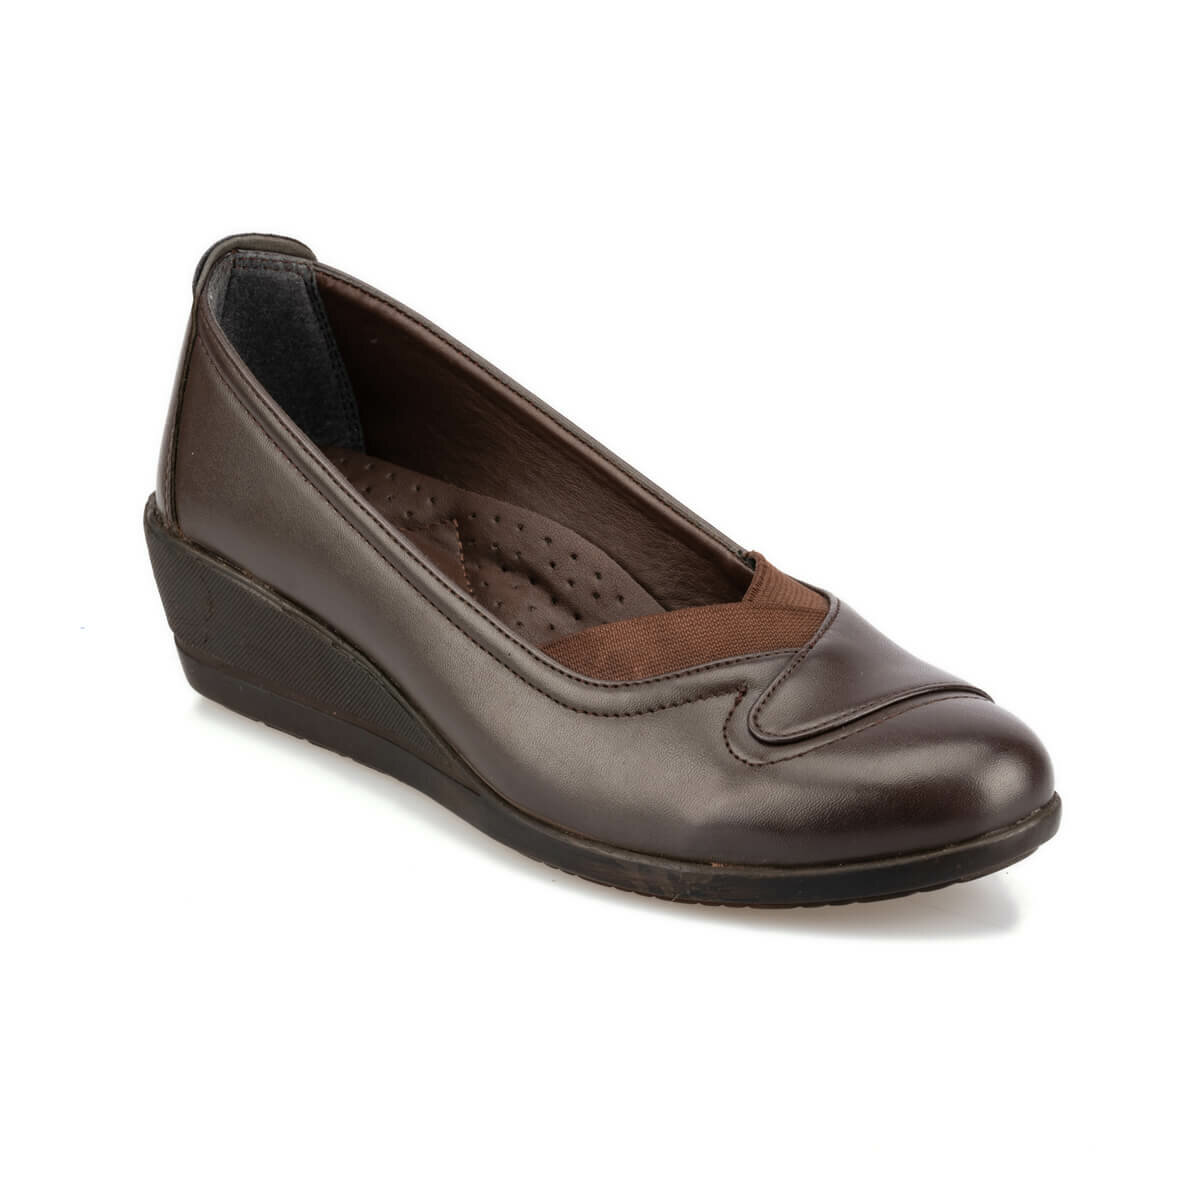 FLO 92.151026.Z Brown Women 'S Wedges Shoes Polaris